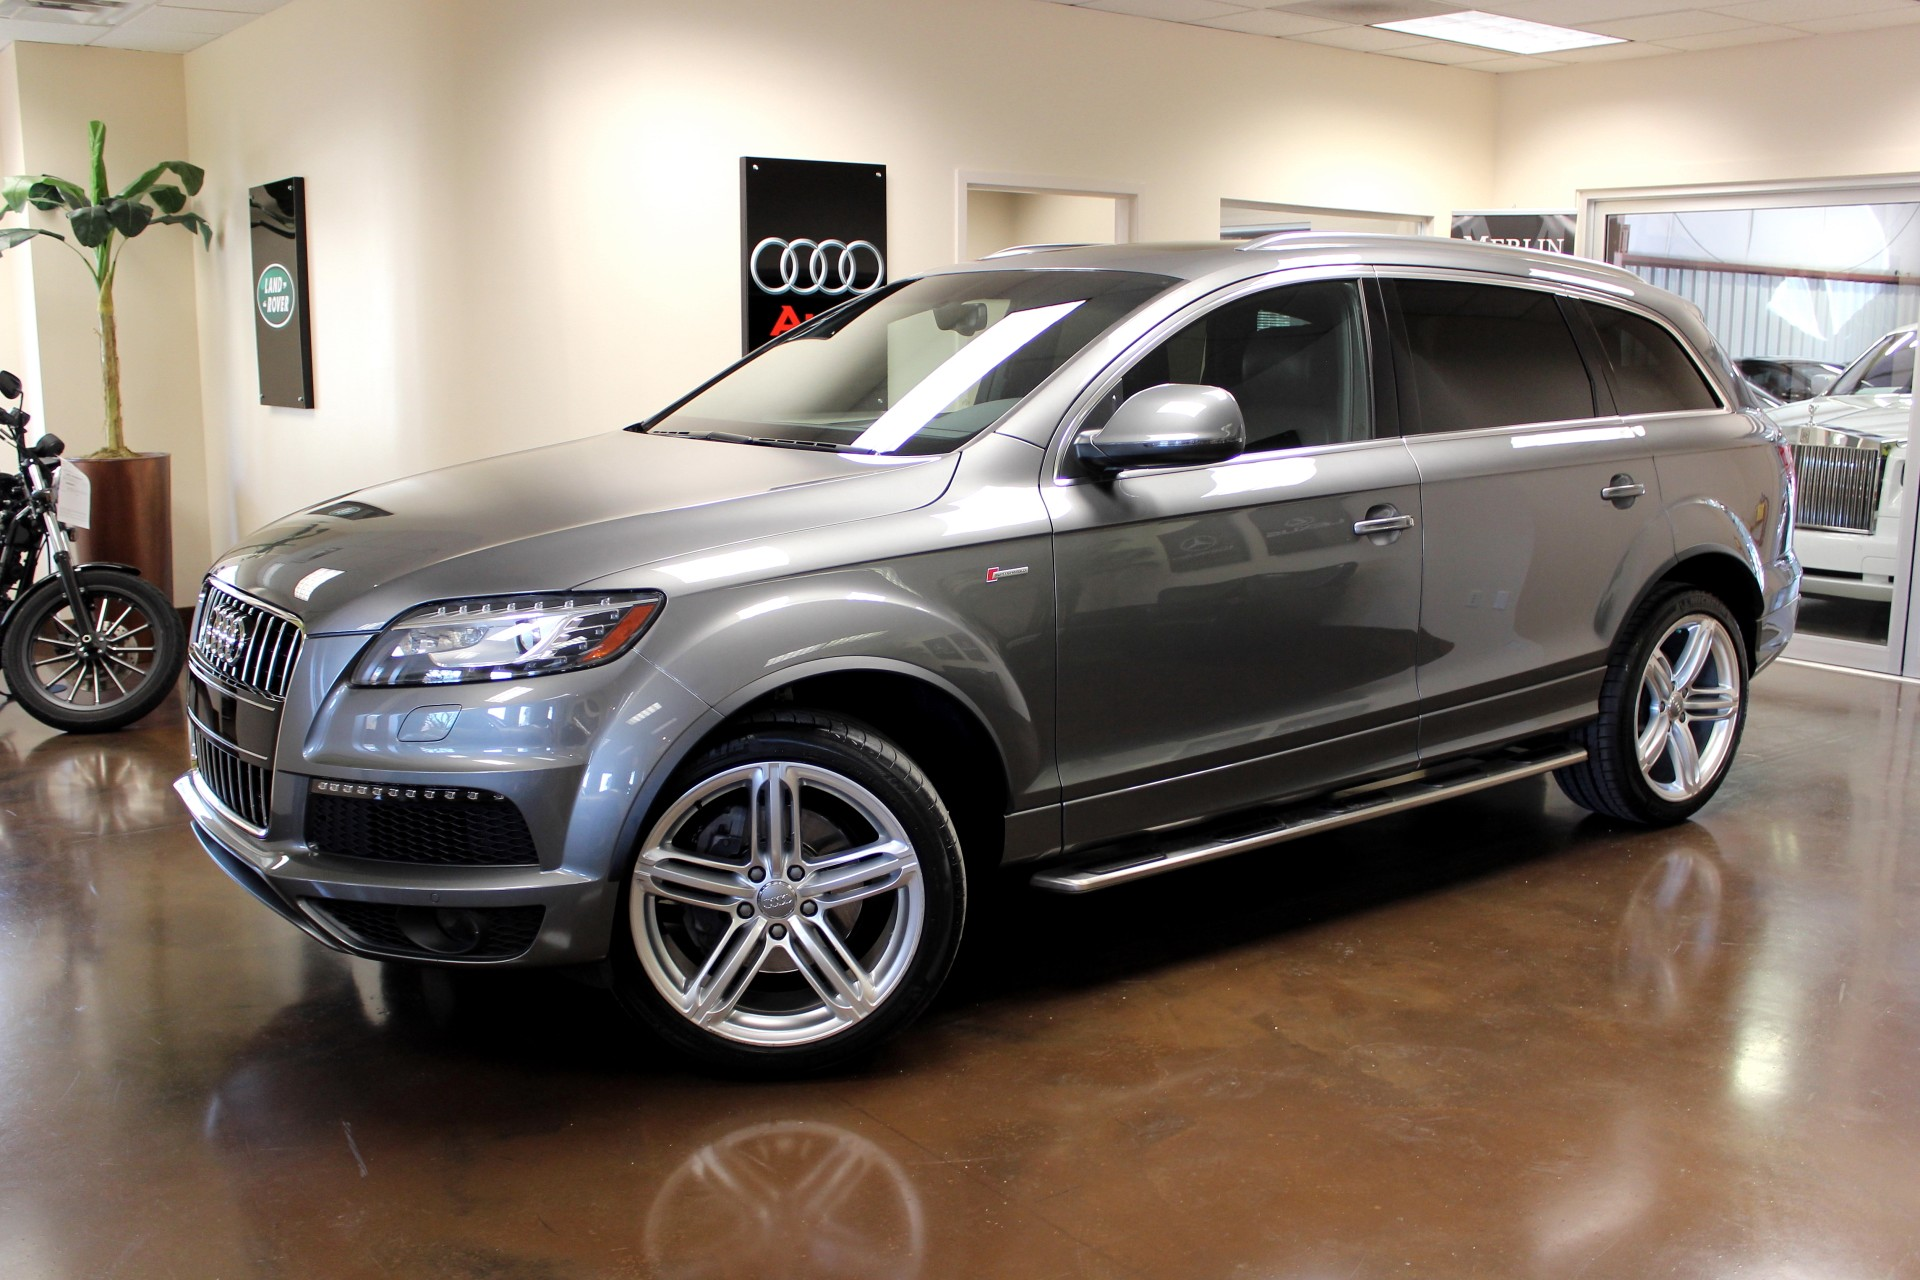 Audi Q7 Lease >> Used 2013 Audi Q7 stock P2884A - Ultra Luxury Car from ...